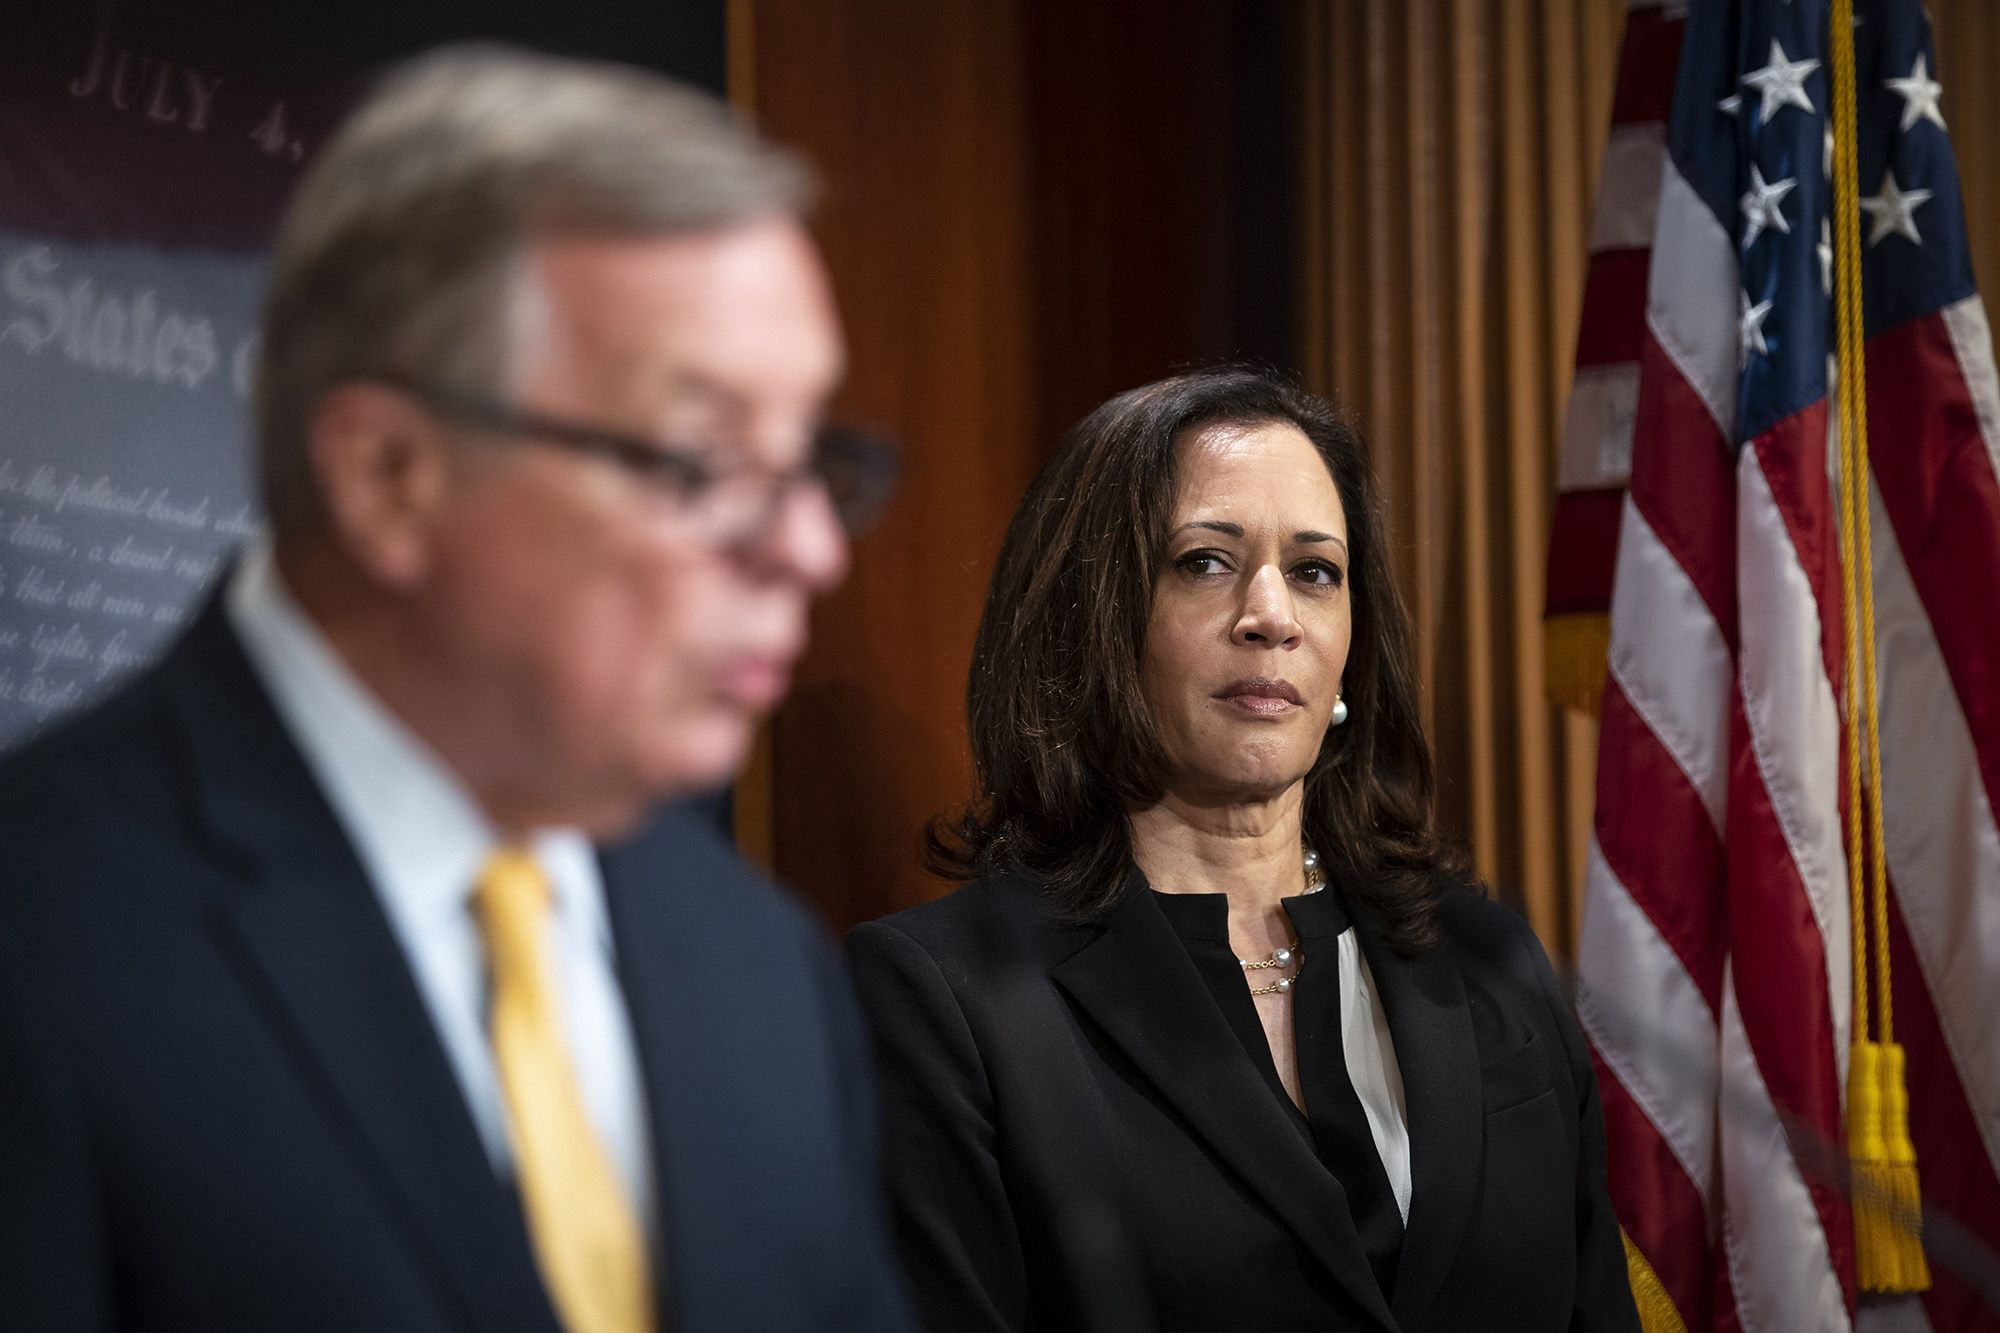 Senator Kamala Harris, a Democrat from California, listens during a news conference at the U.S Capitol in Washington, D.C., U.S., on Wednesday, June 24, 2020. Senate Democrats blocked Republicans' proposal to overhaul U.S. policing practices, contending the measure is too meager to respond to the surge in protests against police brutality and racial inequities, and leaving Congress at an impasse for now. Photographer: Al Drago/Bloomberg via Getty Images